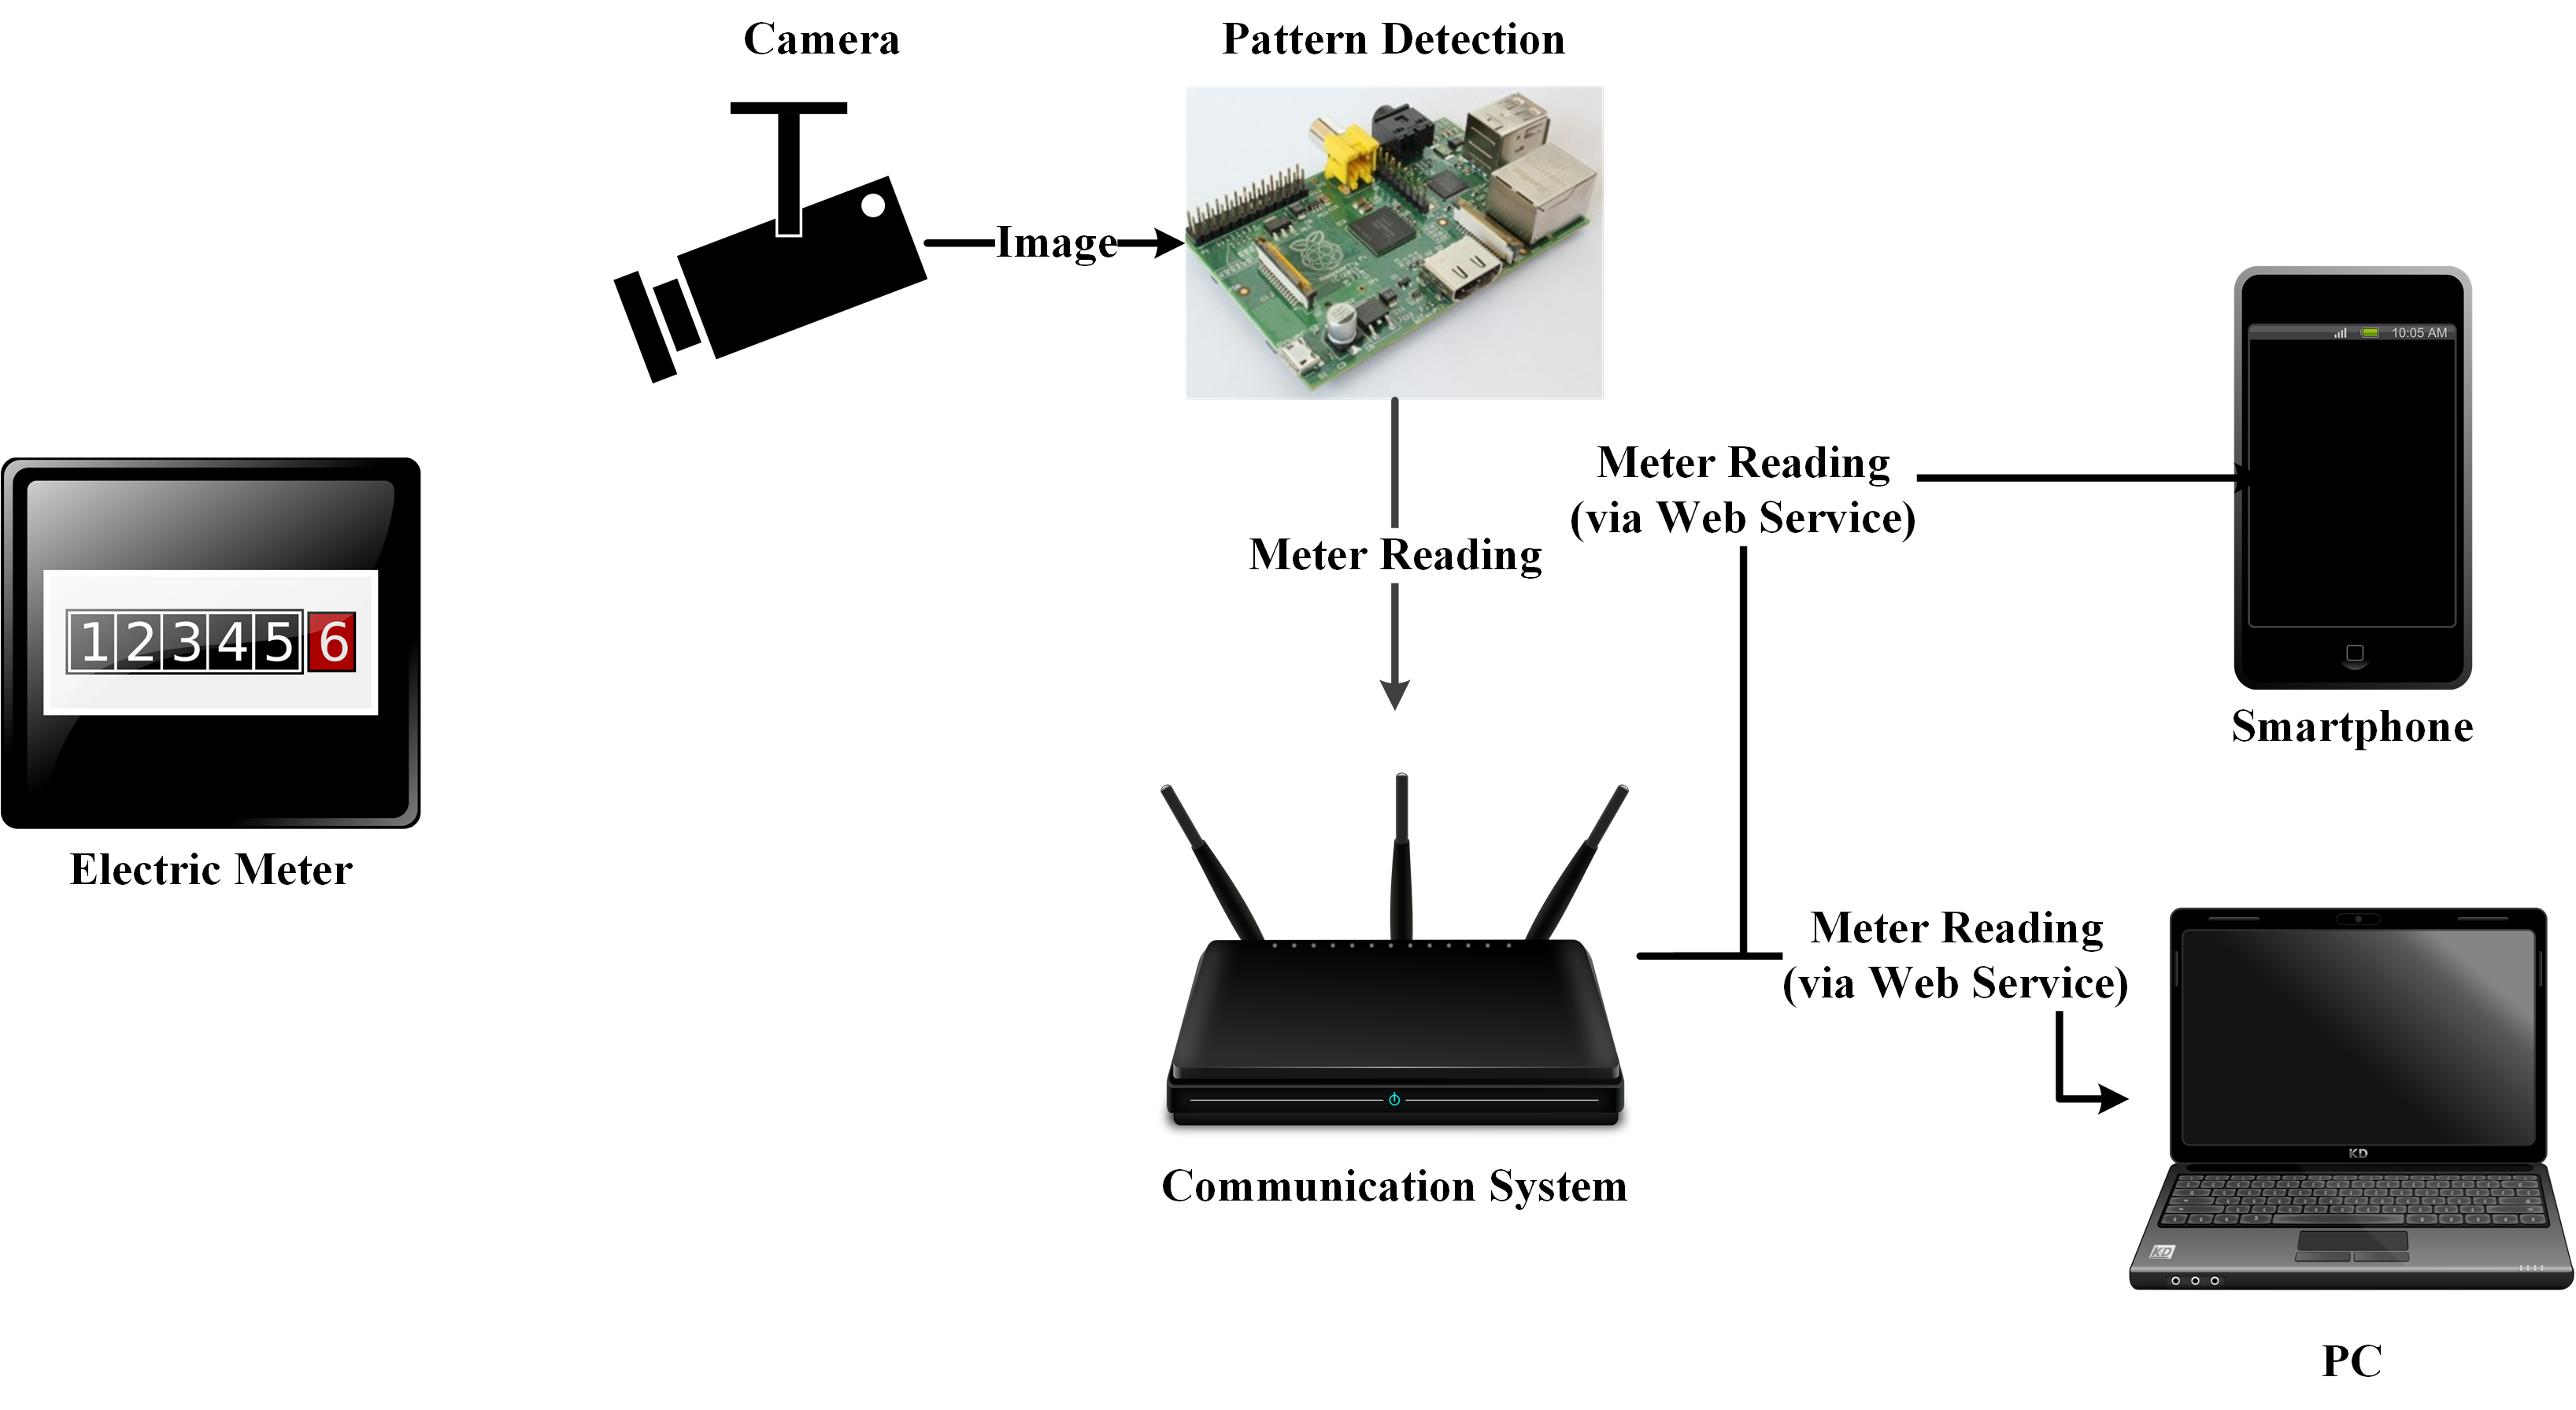 Figure 3: Concept for an upgrade of traditional meters to DPWS-based Smart Meters